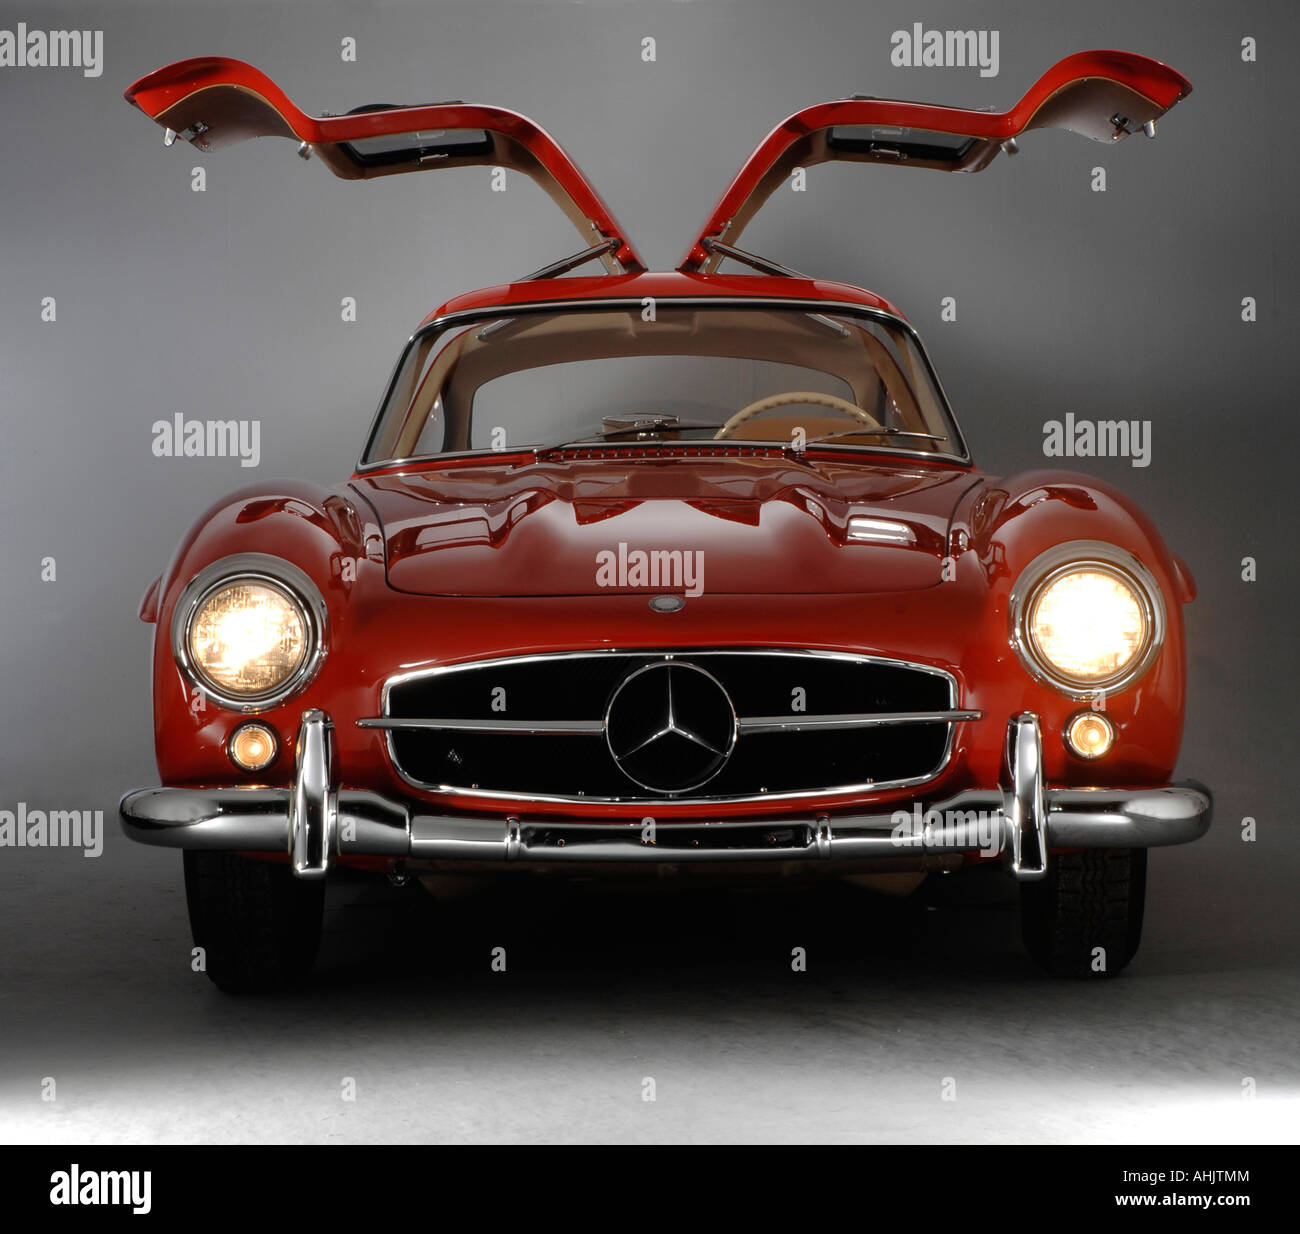 1957 mercedes benz 300sl gullwing stock photo, royalty free image